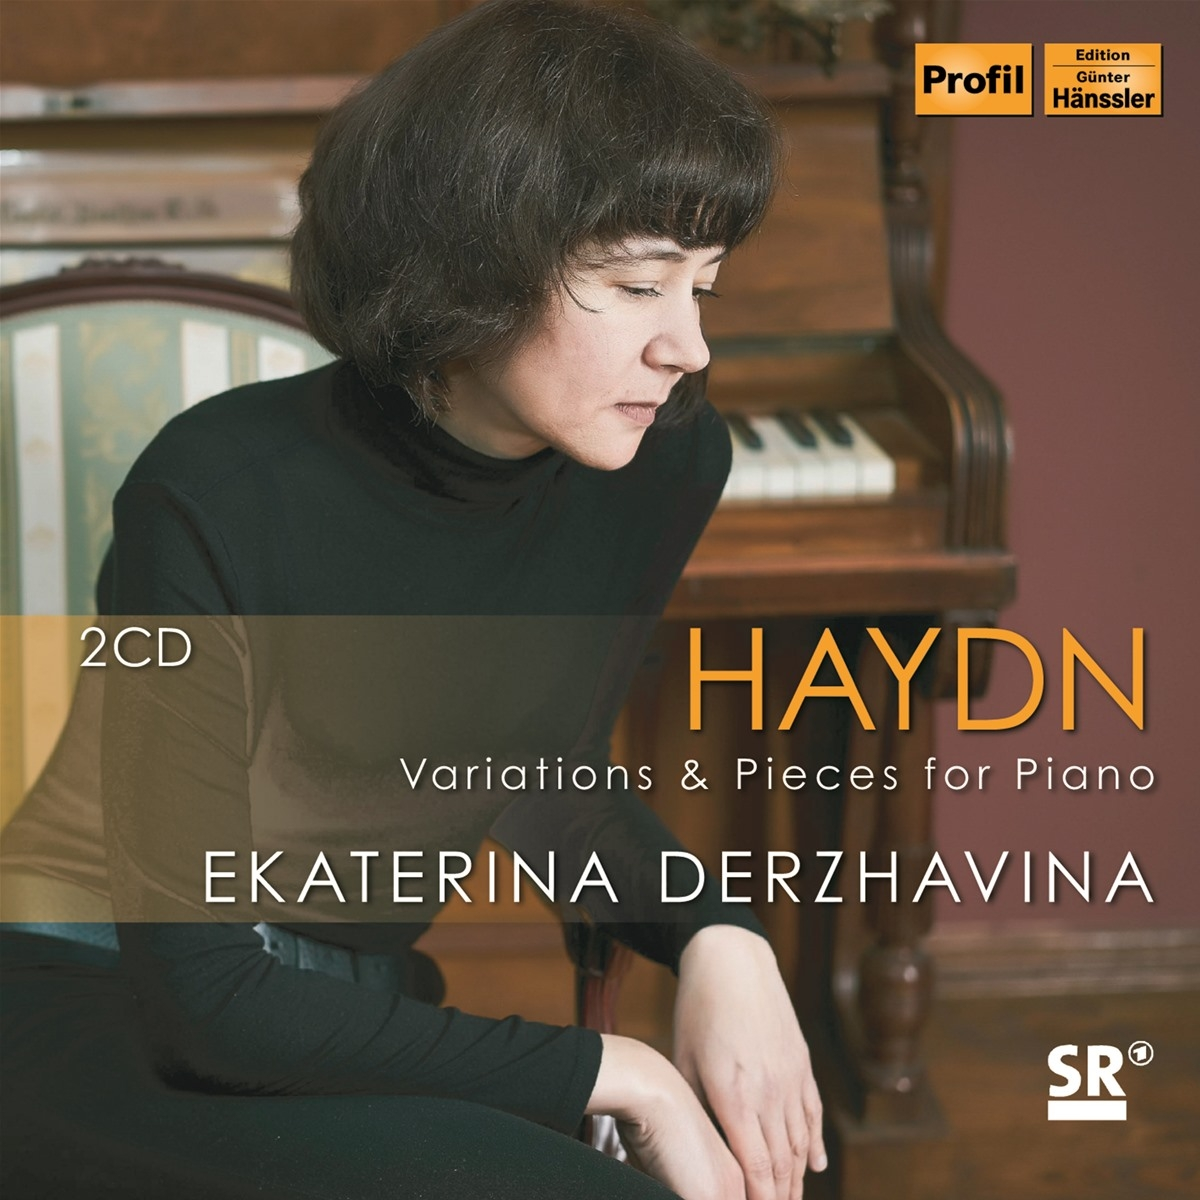 Haydn-Variations & Pieces for Piano